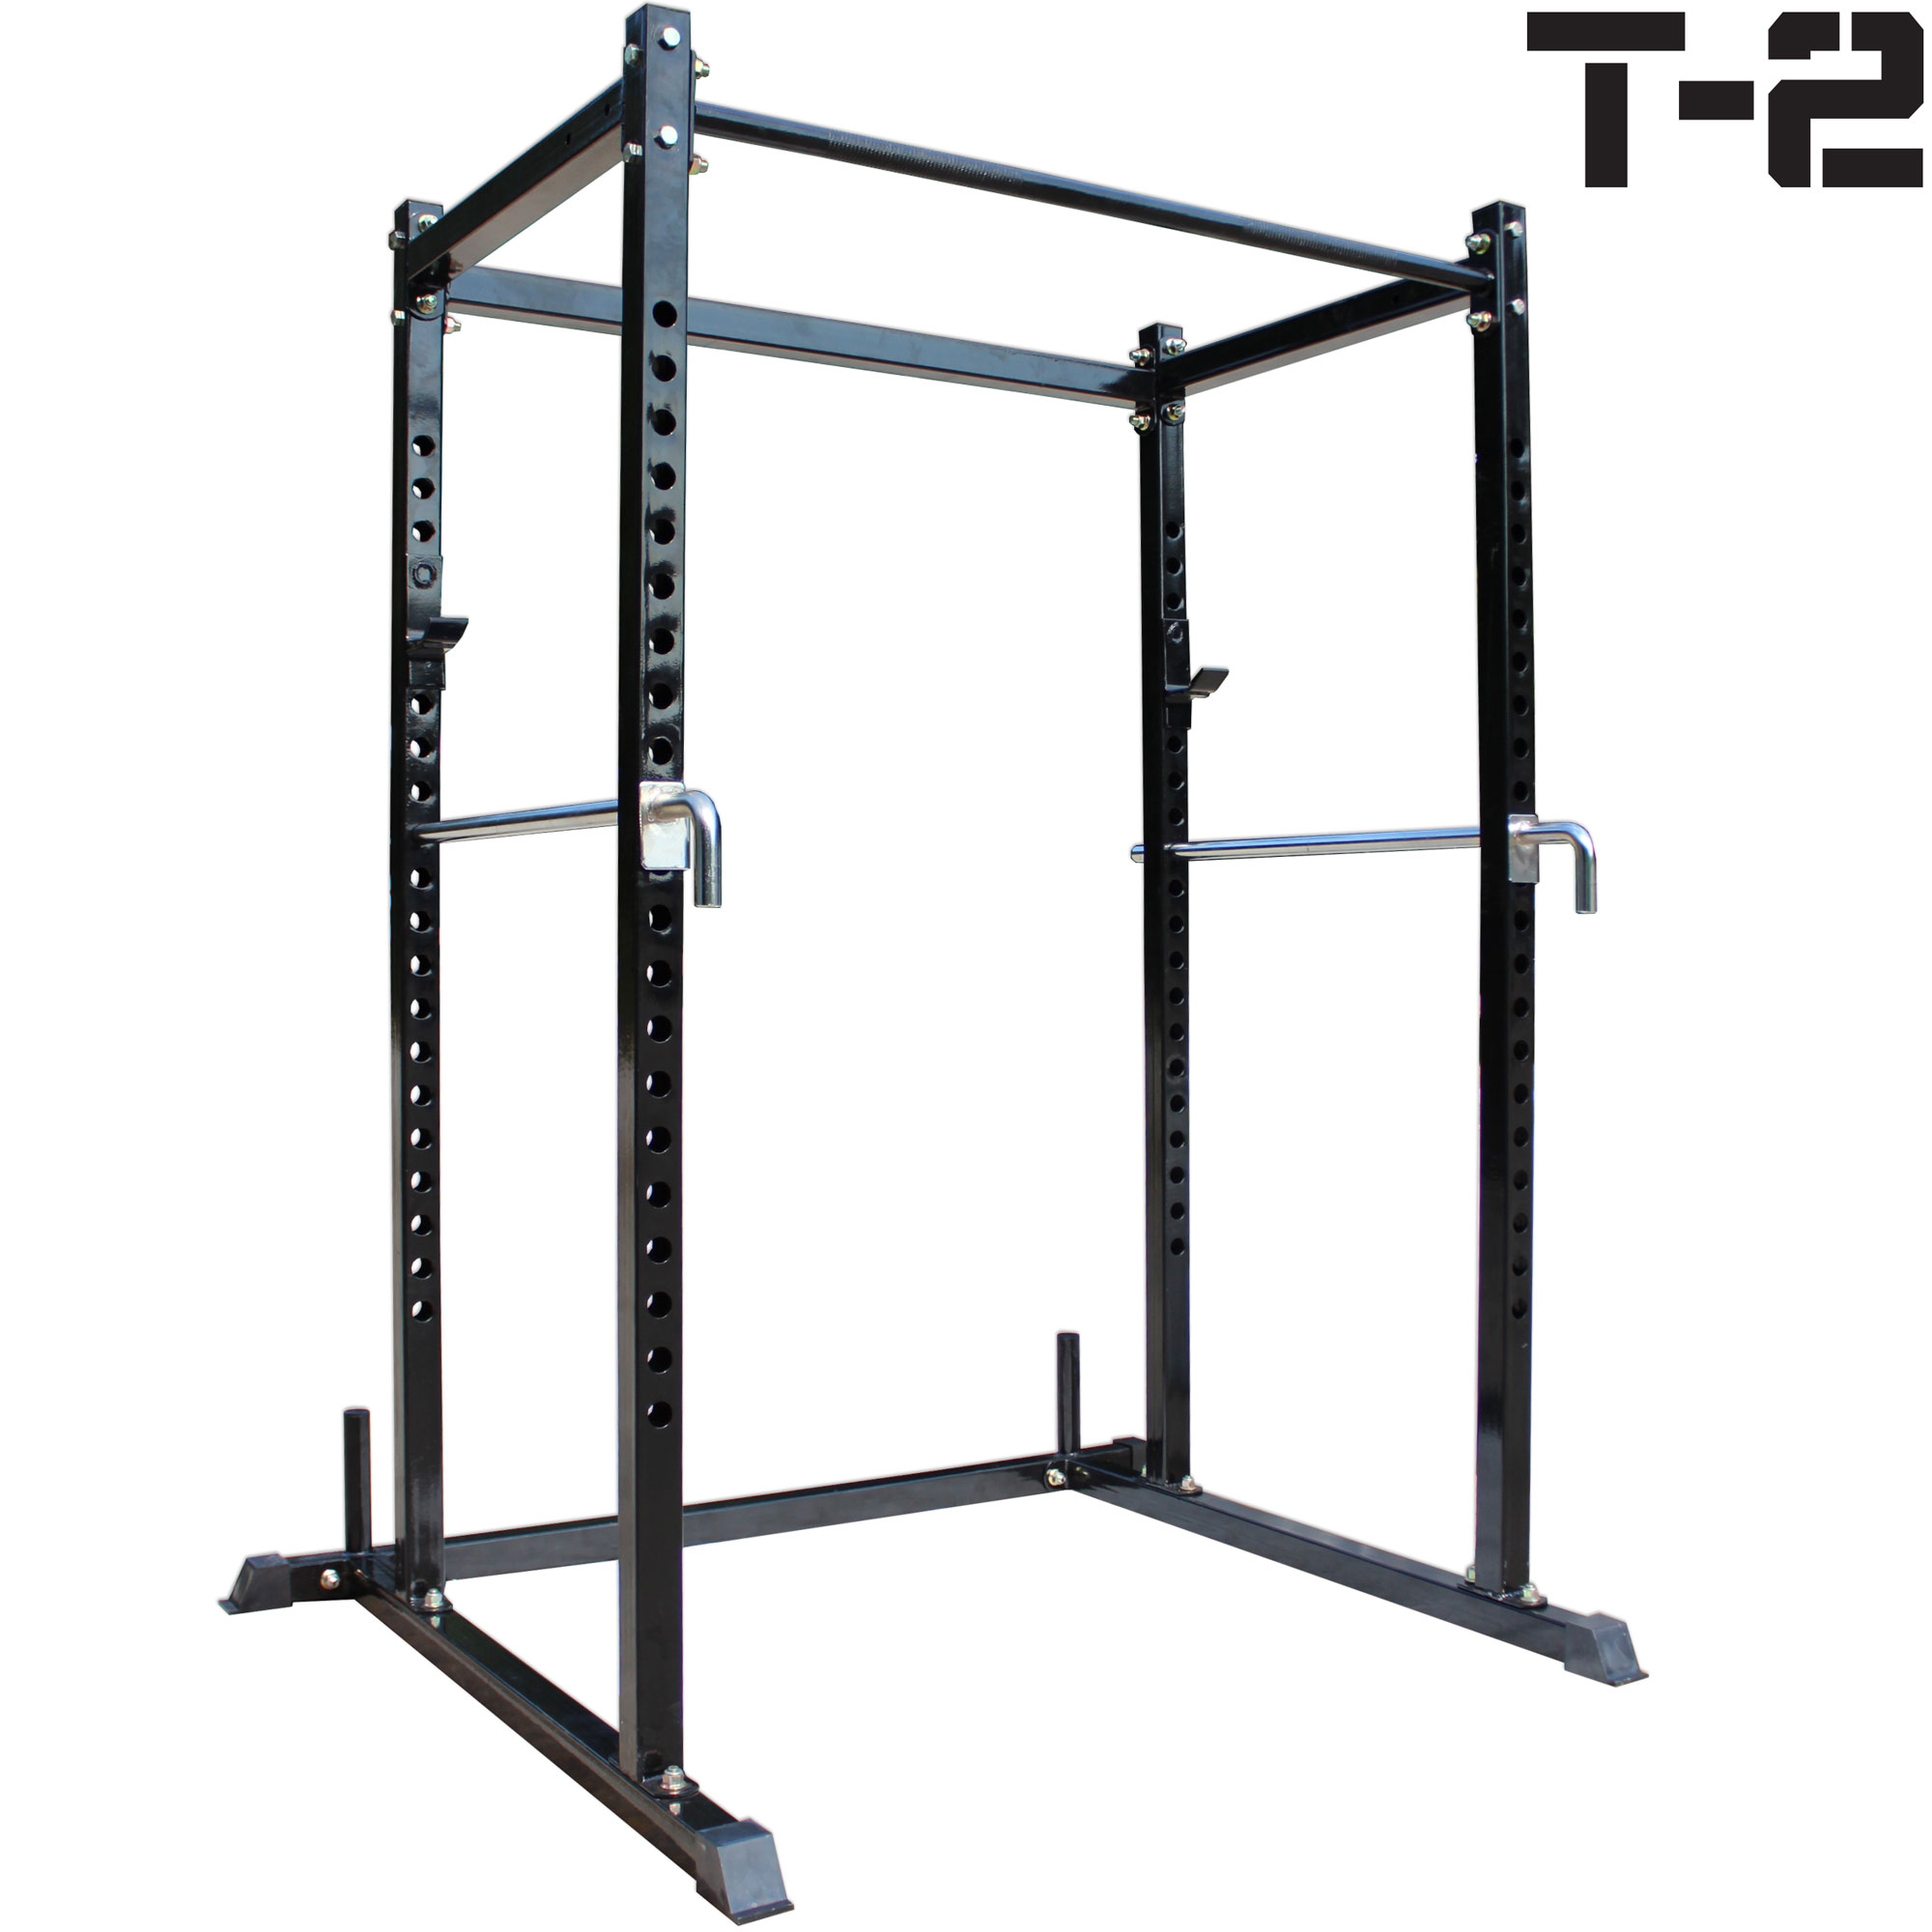 Titan T-2 Series Short Power Rack w/Dip Bars Lift Cage Bench cross fit pull up